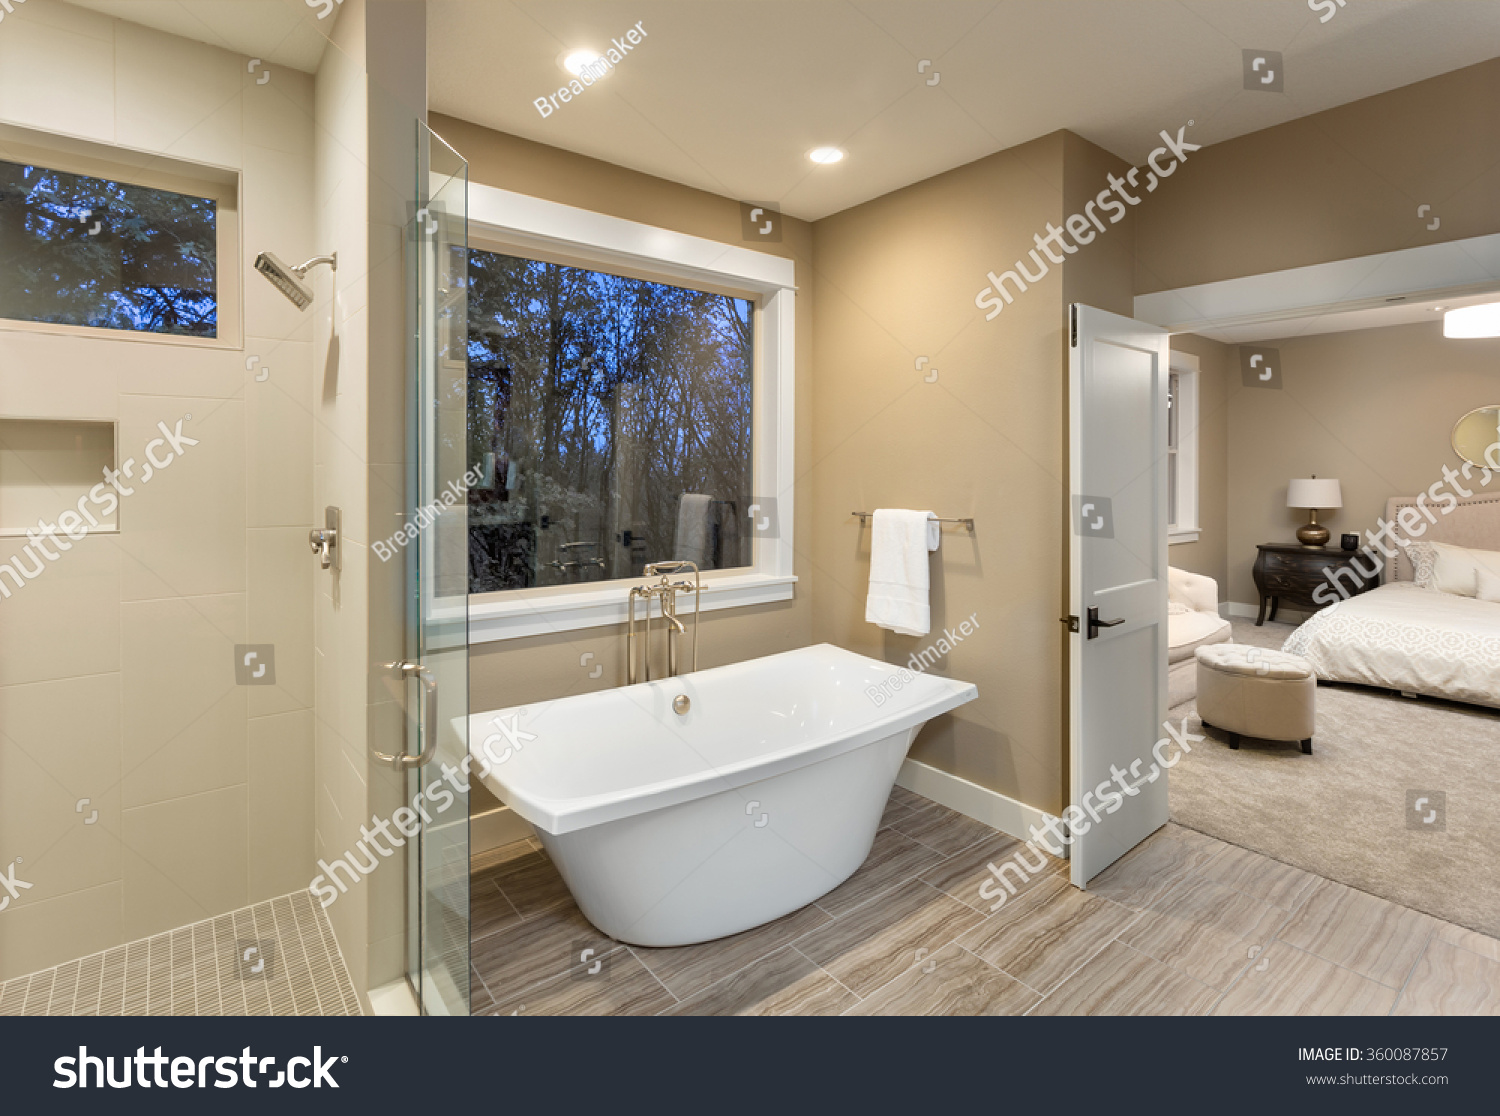 large furnished bathroom in luxury home with tile floor shower bathtub and view